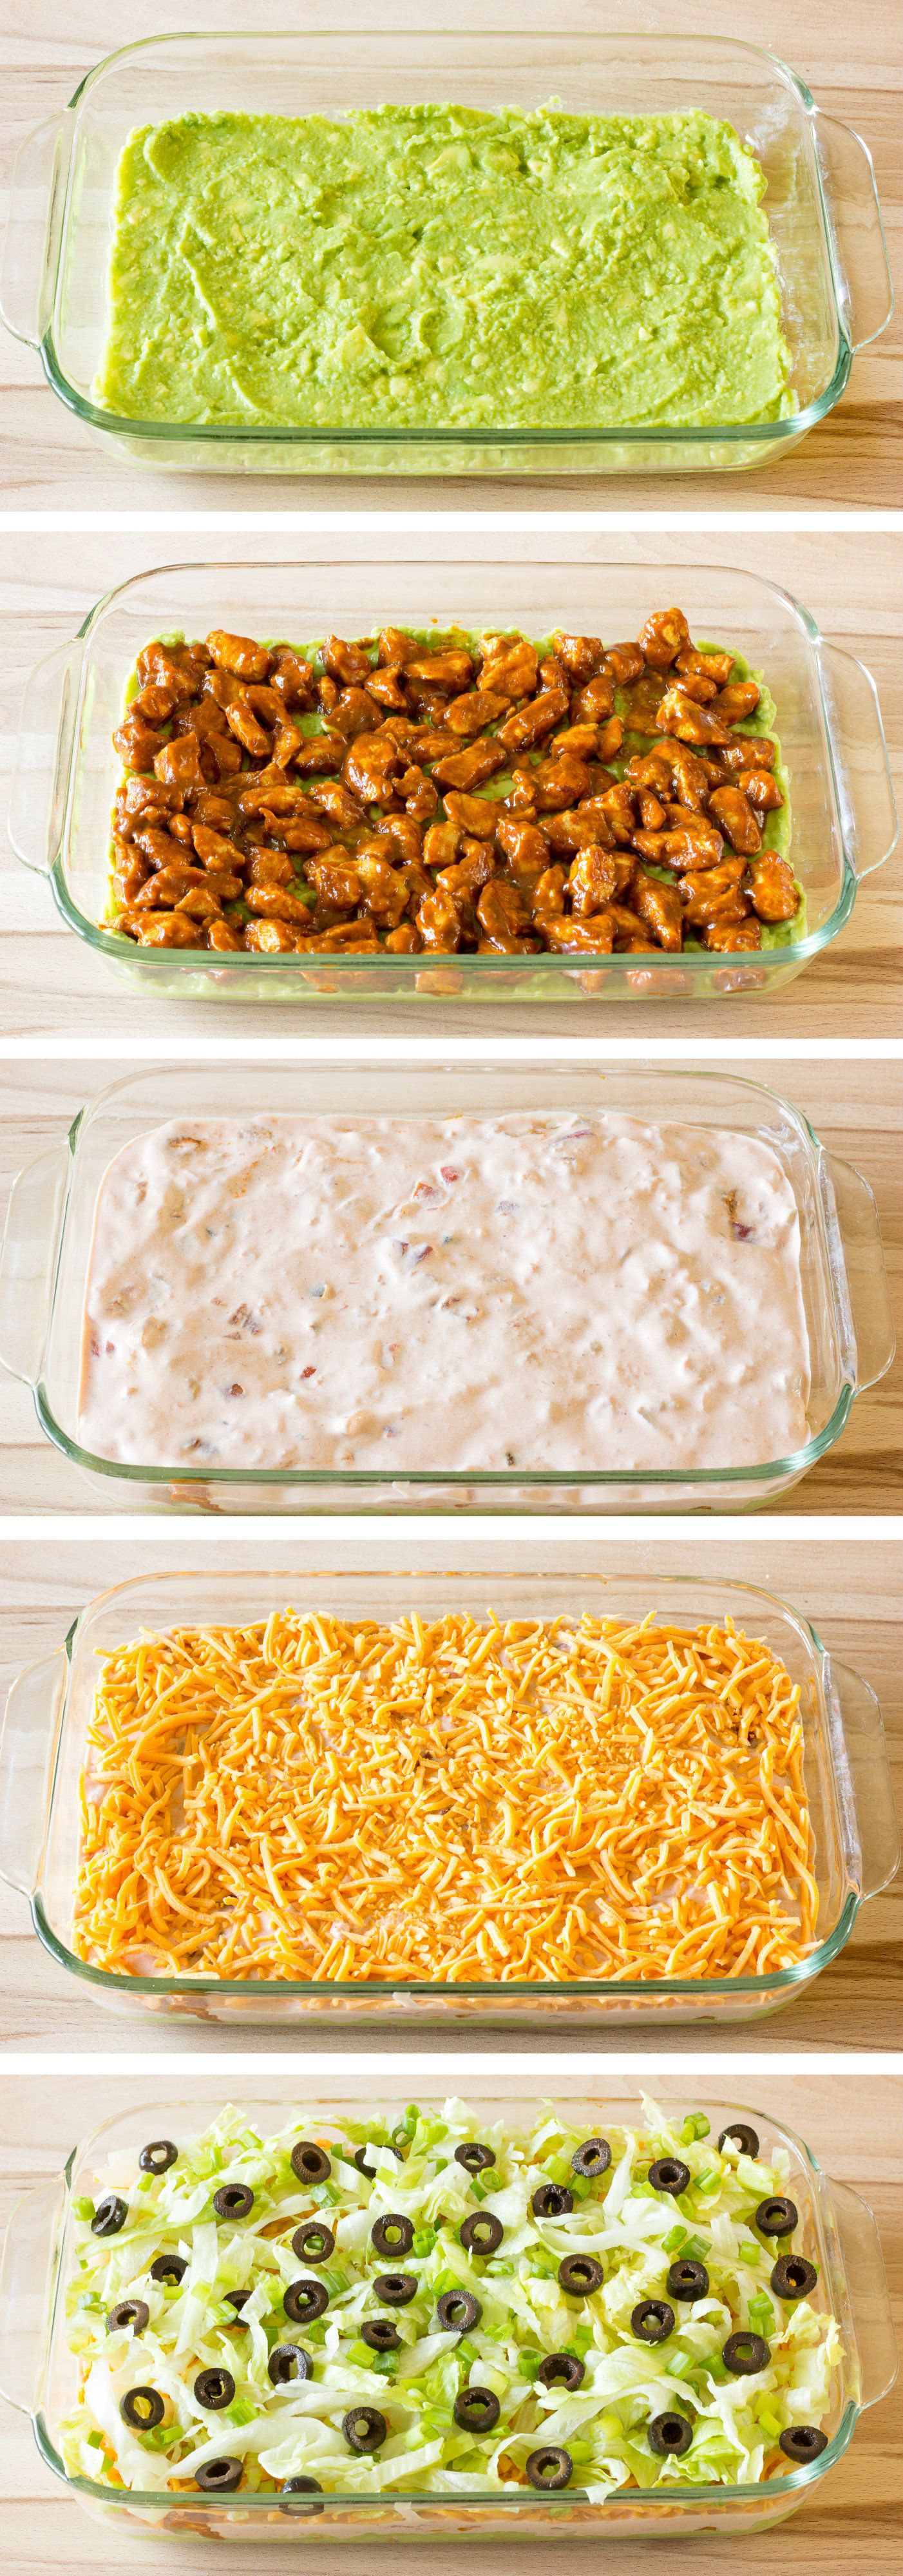 7 Layer Chicken Taco Dip - The Wholesome Dish